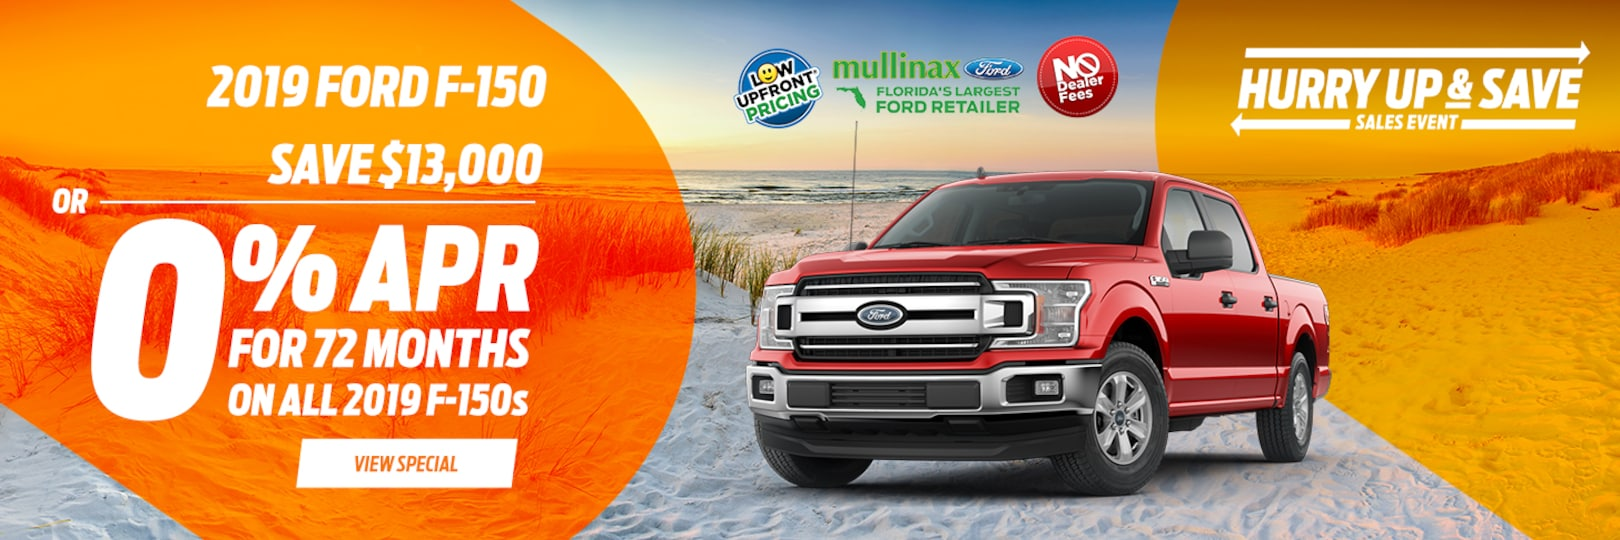 Mullinax Ford of Kissimmee | Ford Dealership near Orlando, FL